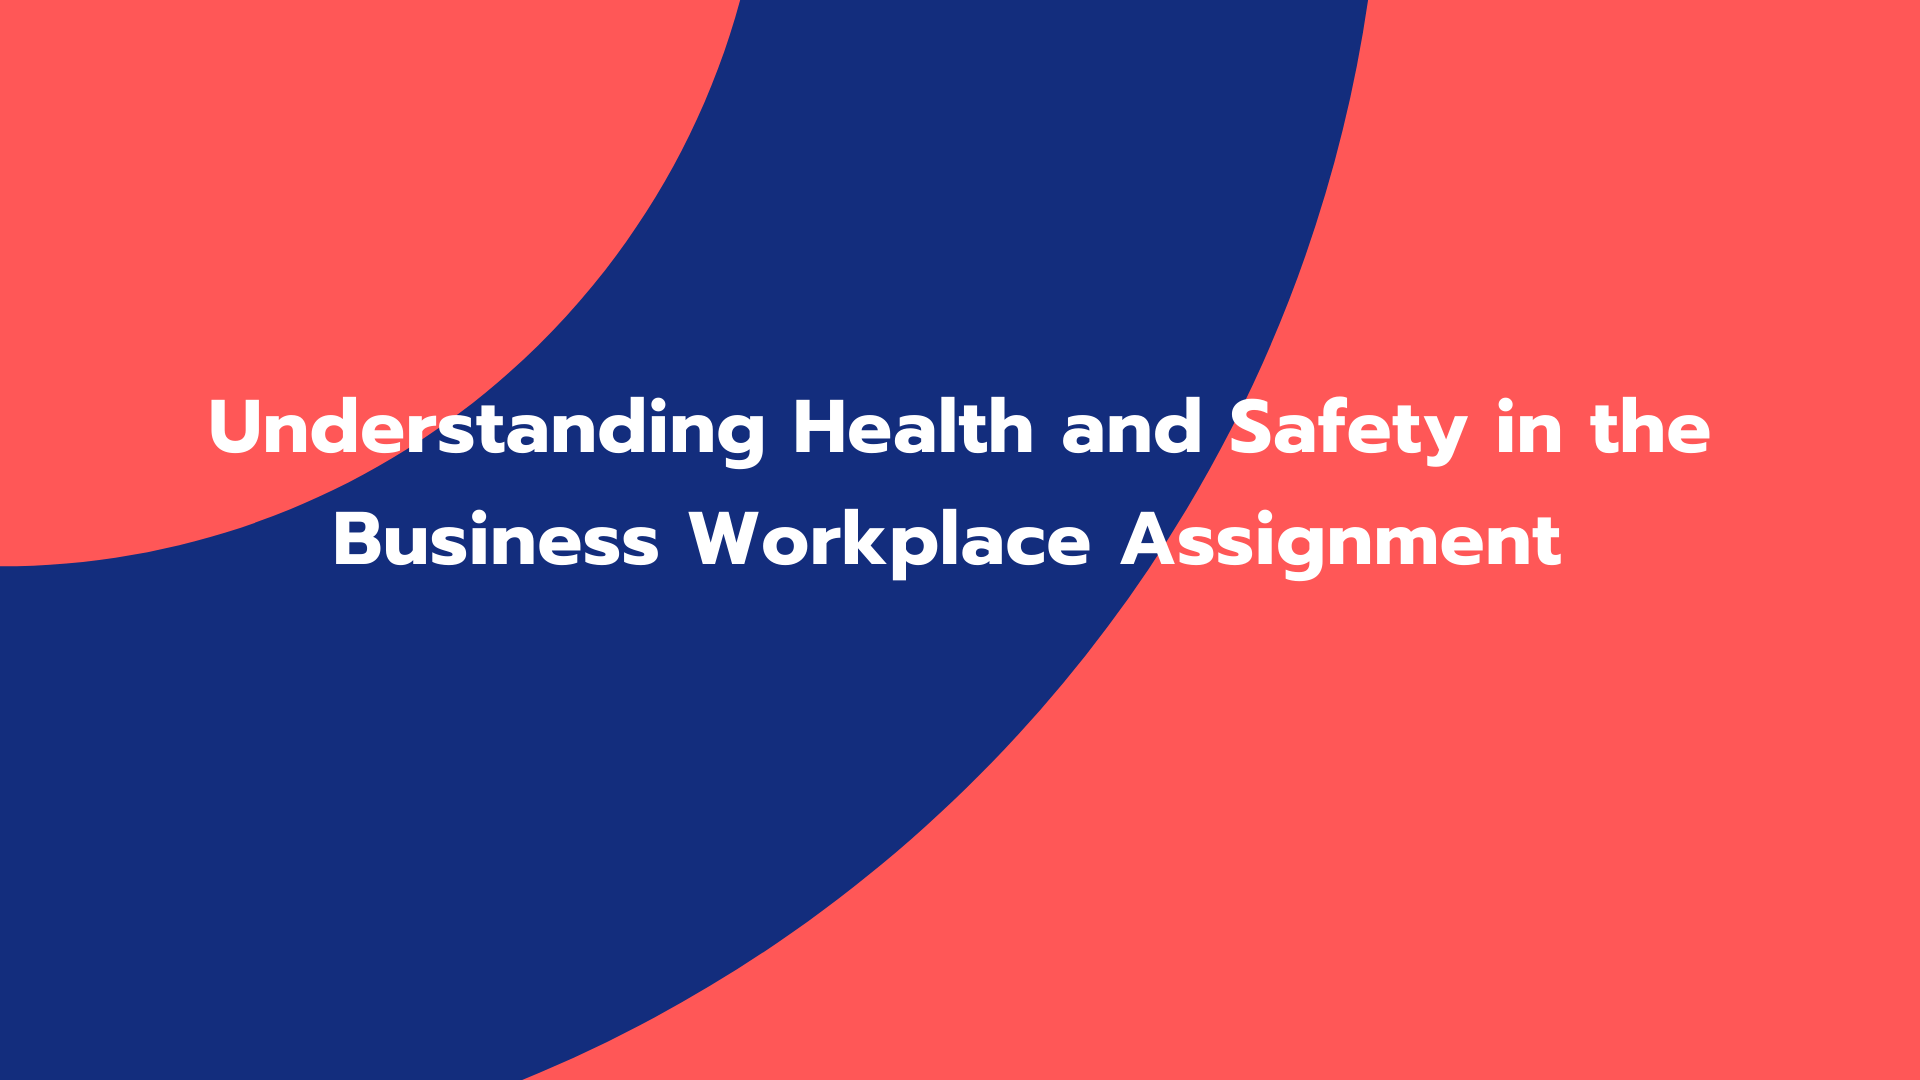 Understanding Health and Safety in the Business Workplace Assignment